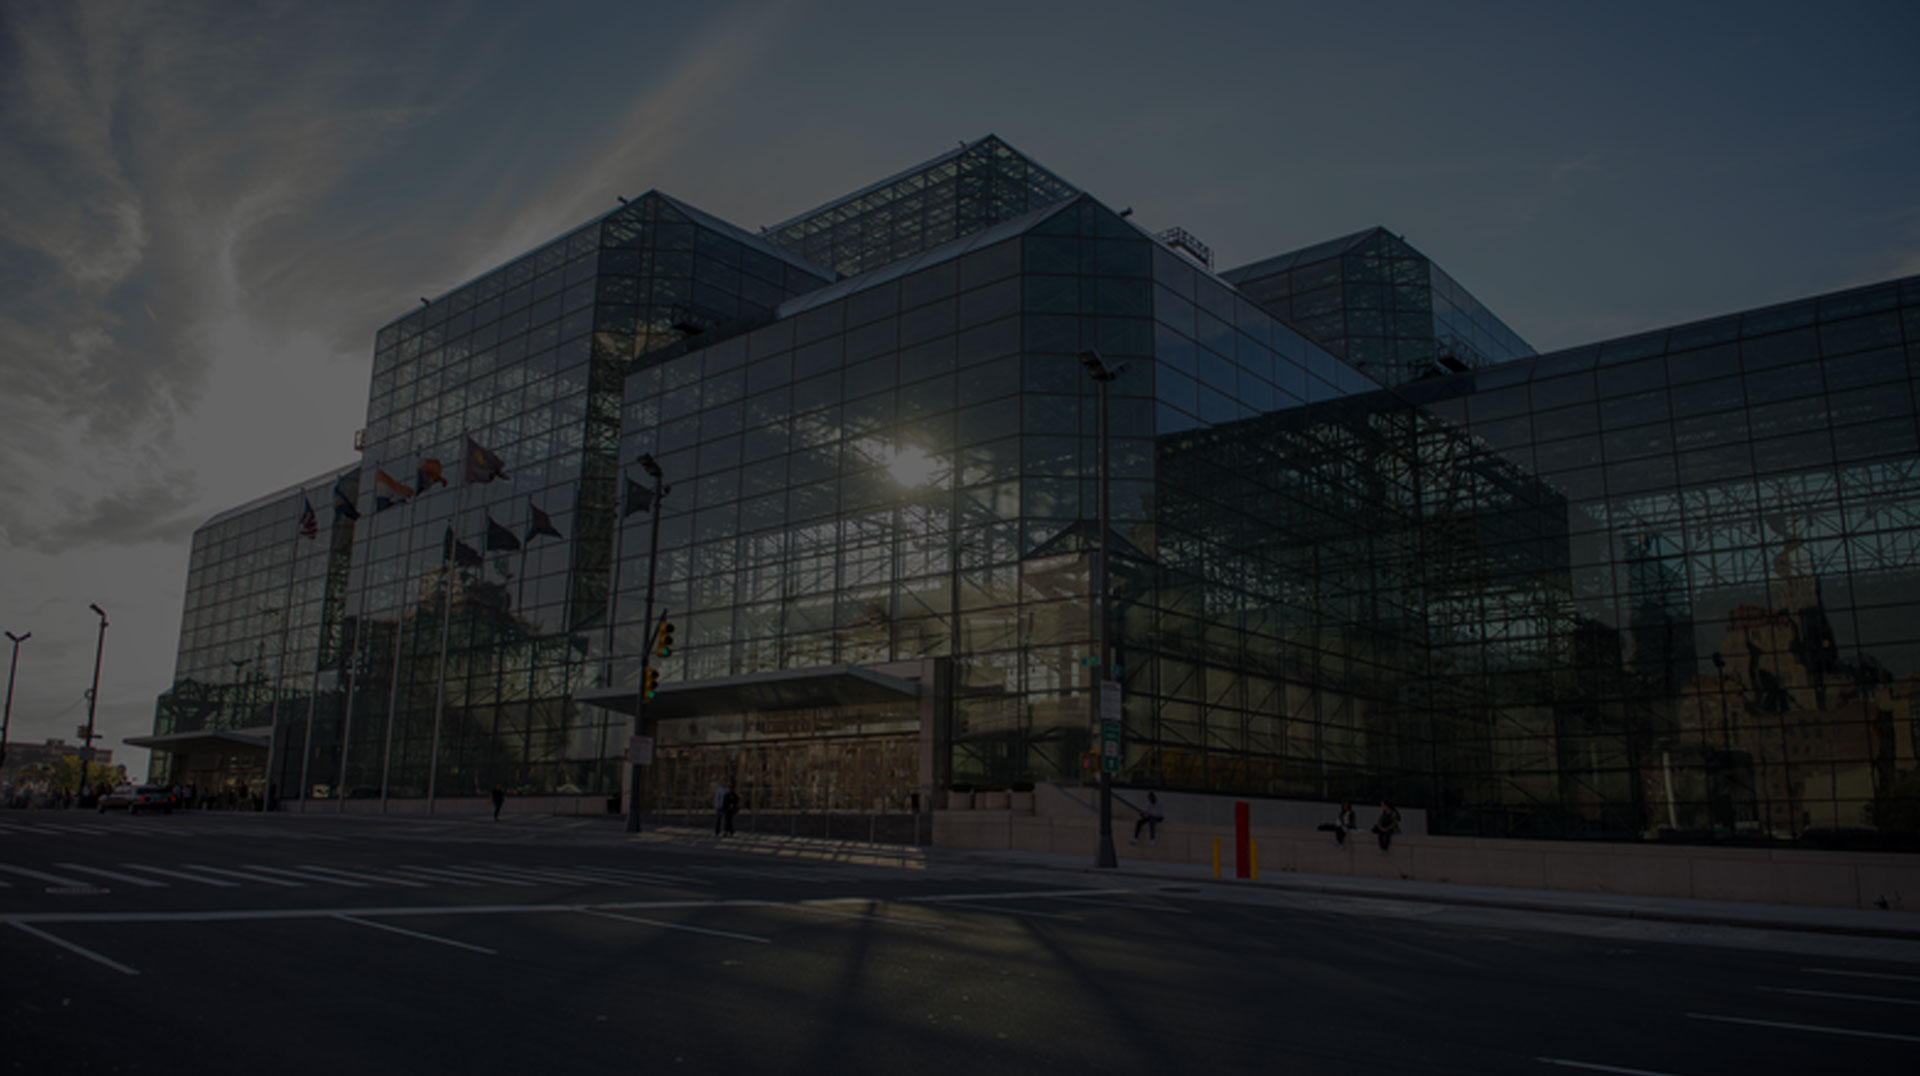 Jacob K. Javits Center